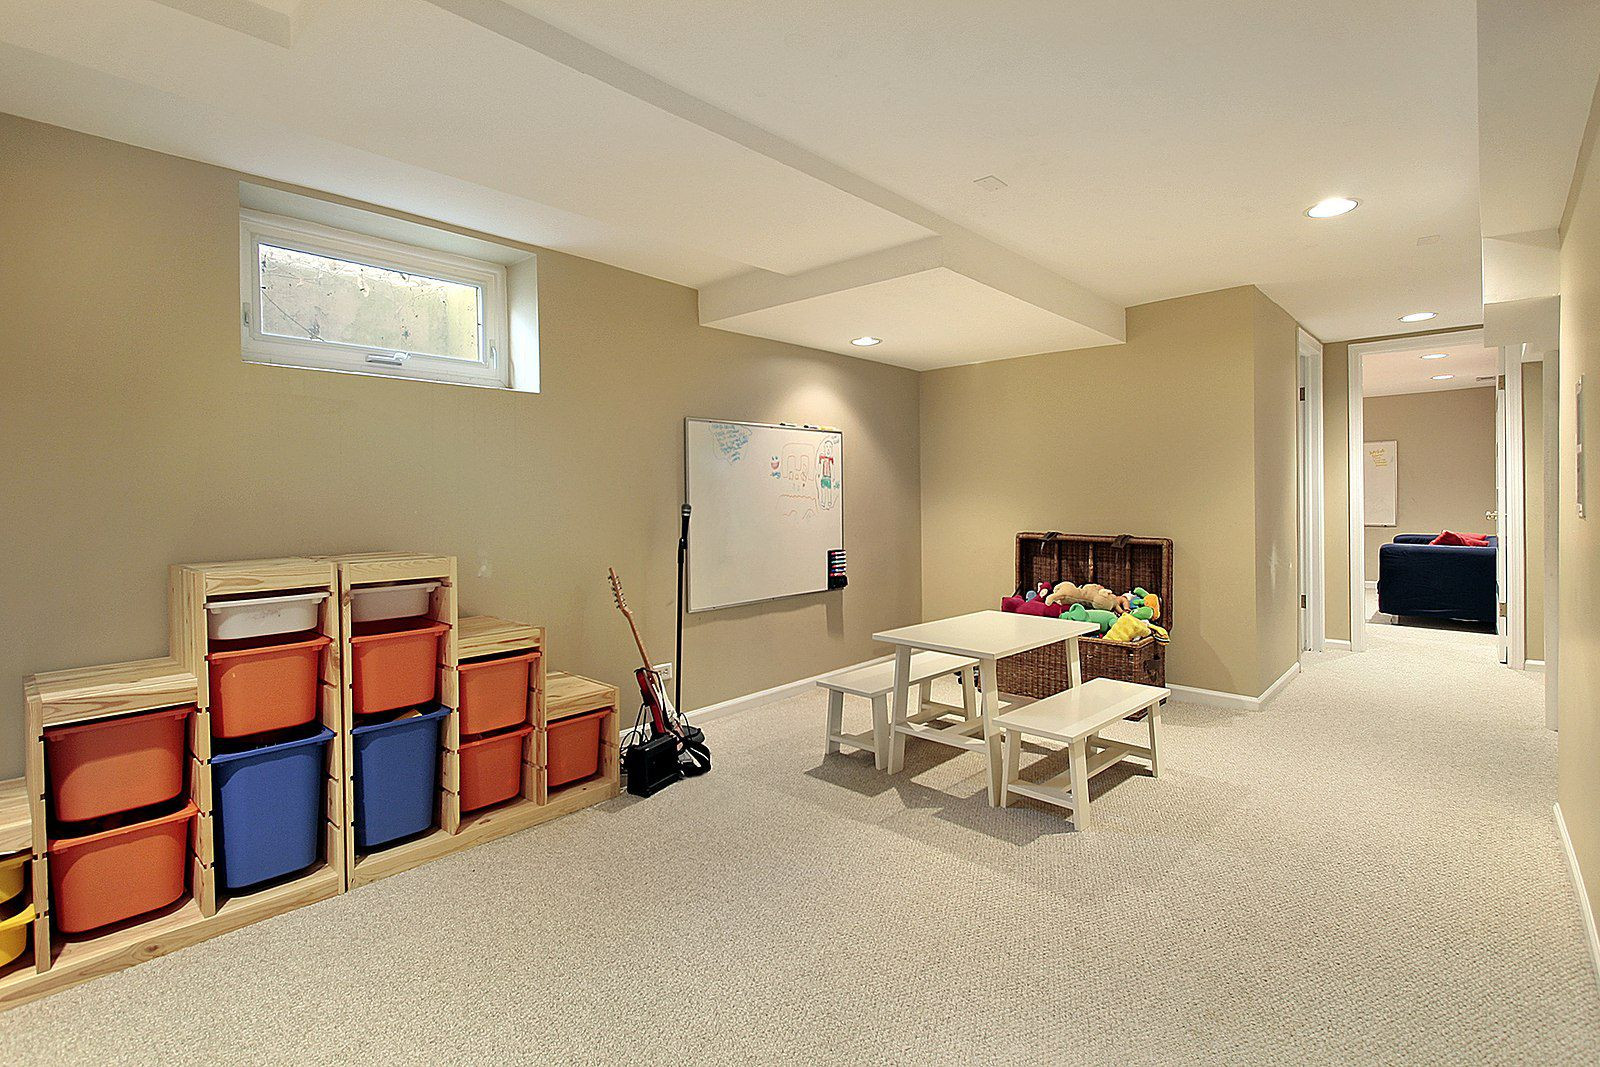 Best ideas about Basement Ideas For Kids . Save or Pin Basement Finishing Ideas with Stunning Interior Designs Now.